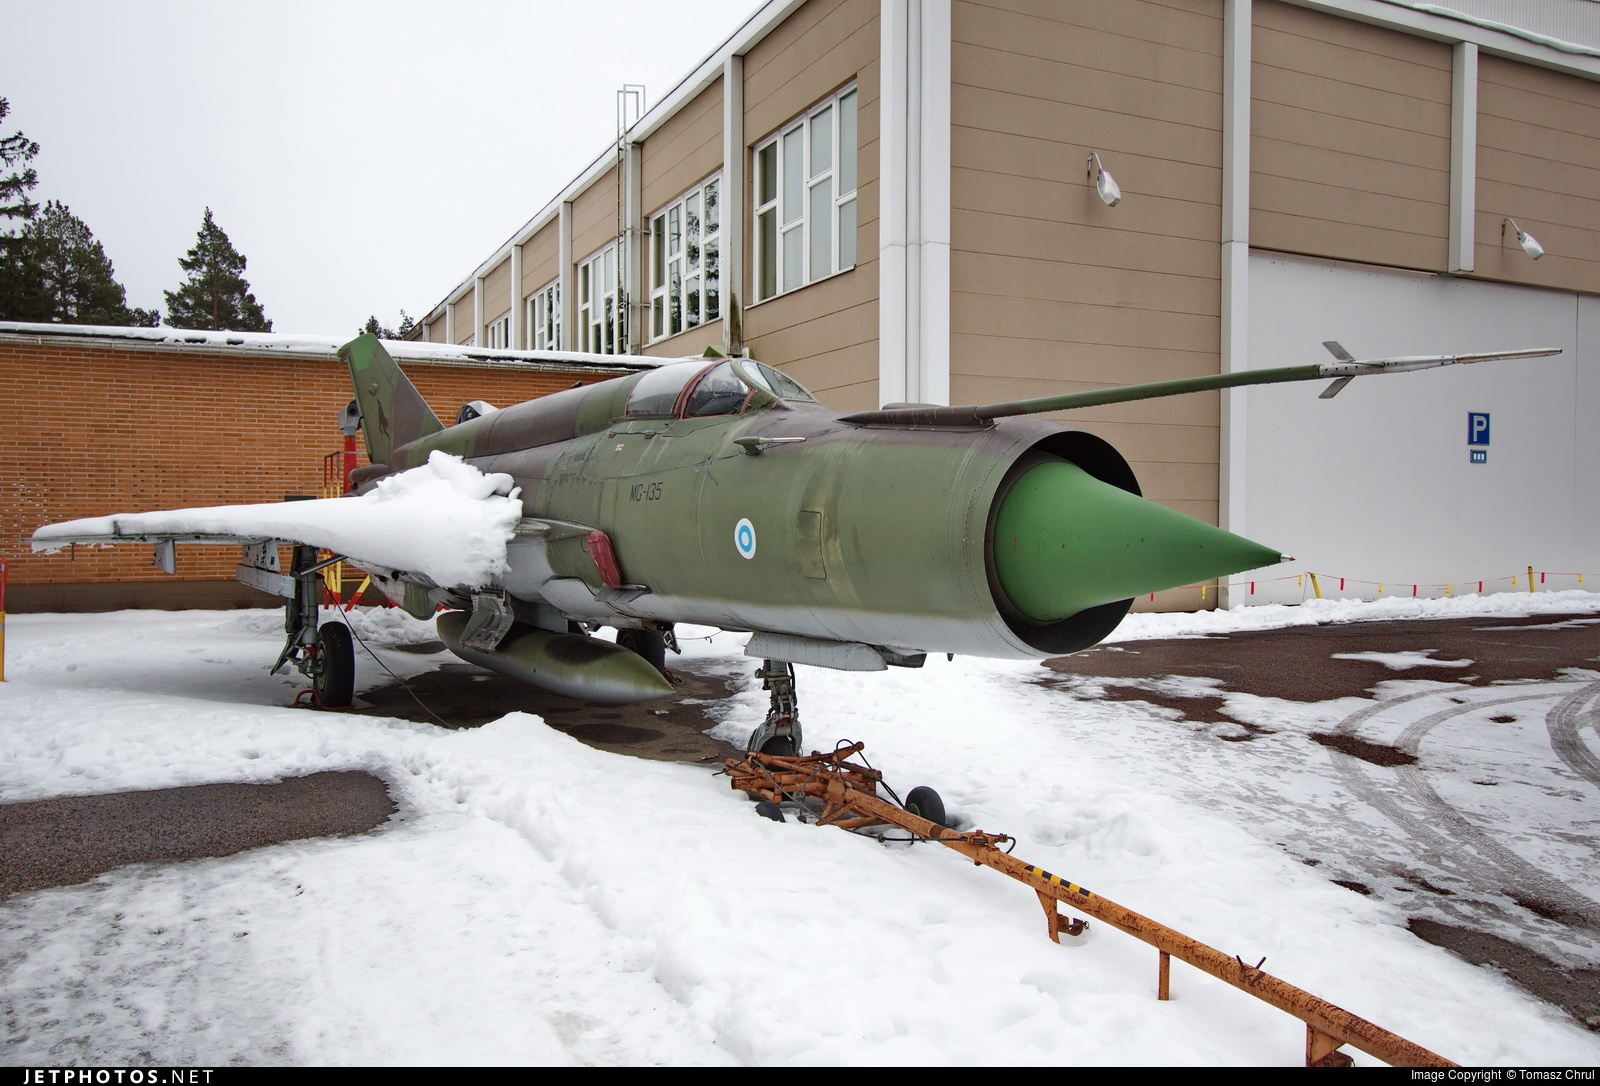 MG-135 - Mikoyan-Gurevich MiG-21 Fishbed - Finland - Air Force